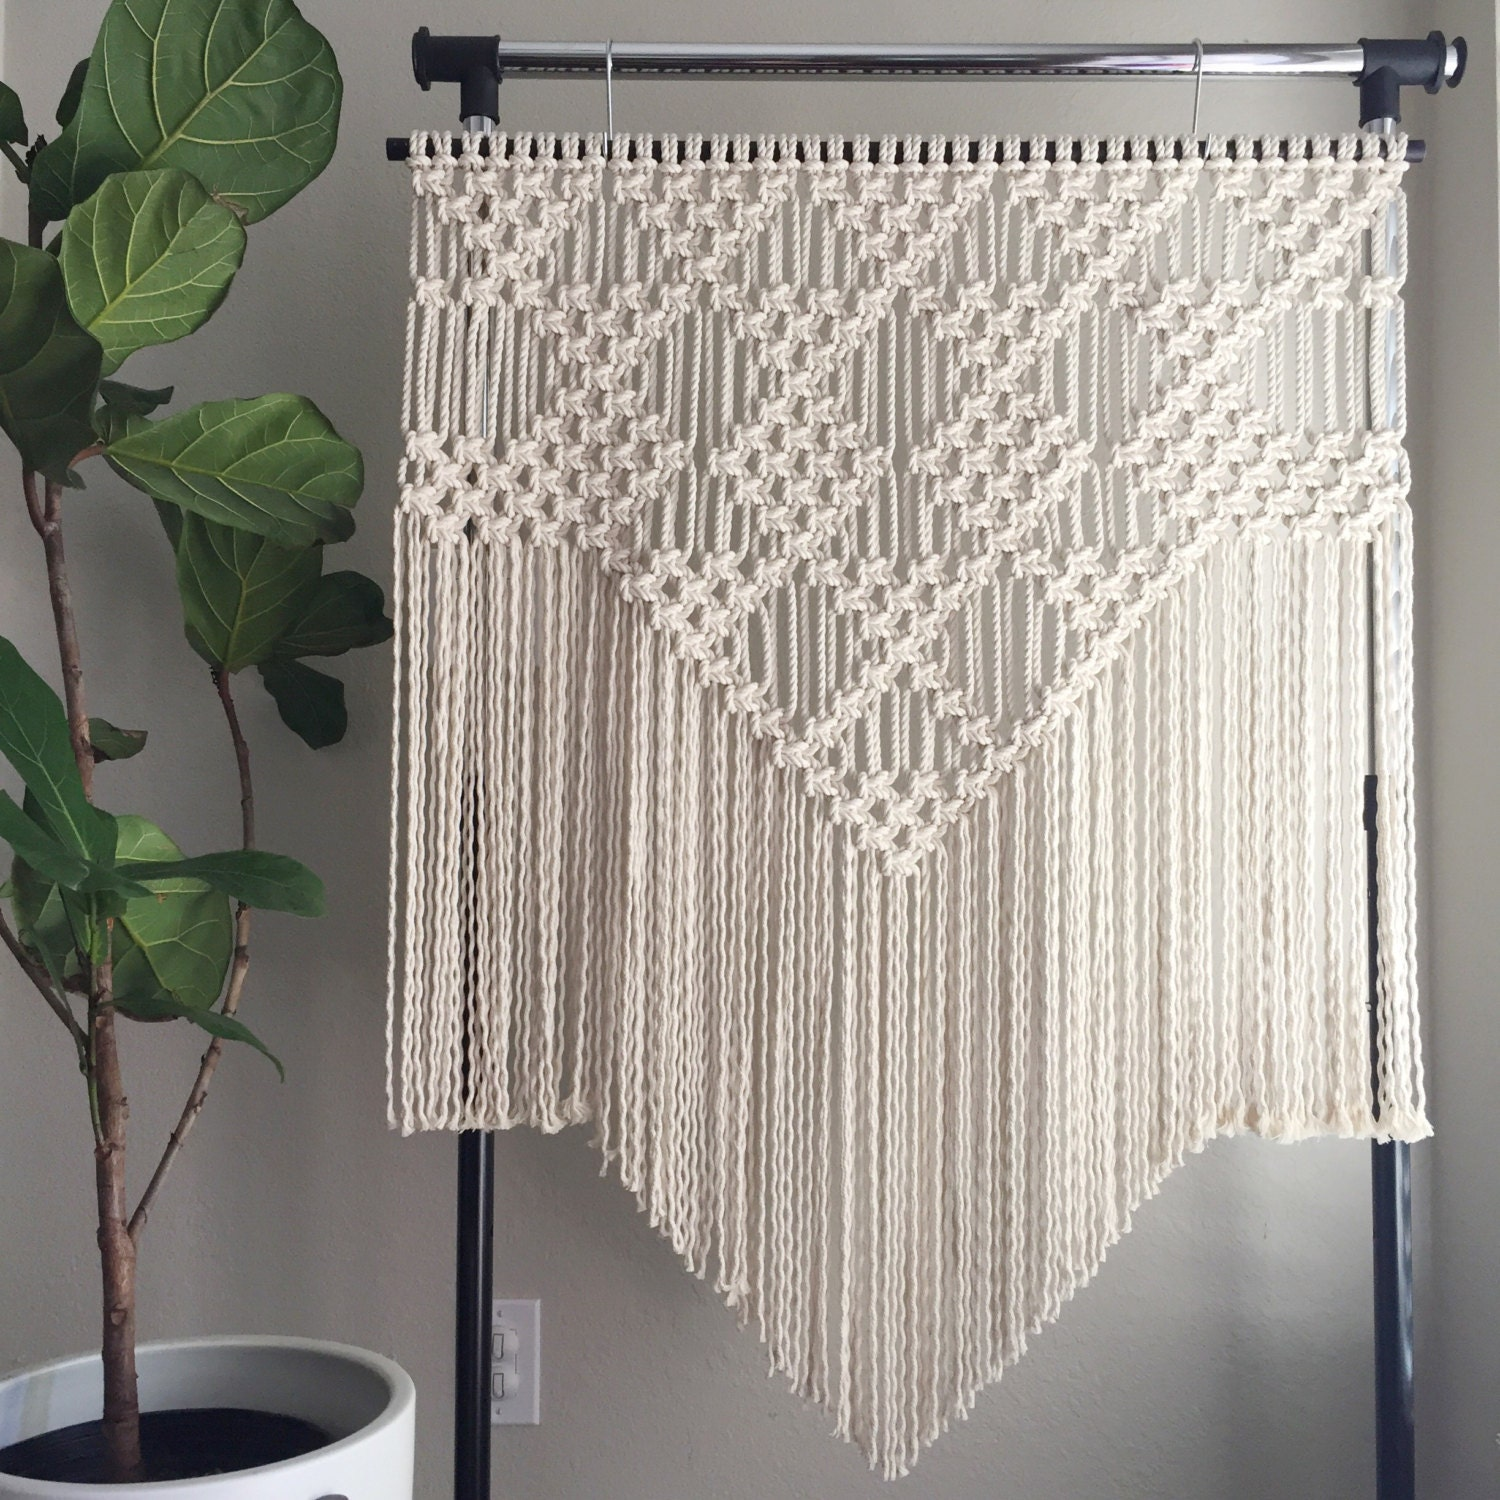 macrame wall hanging patterns free macrame patterns macrame pattern large macrame wall hanging 7723